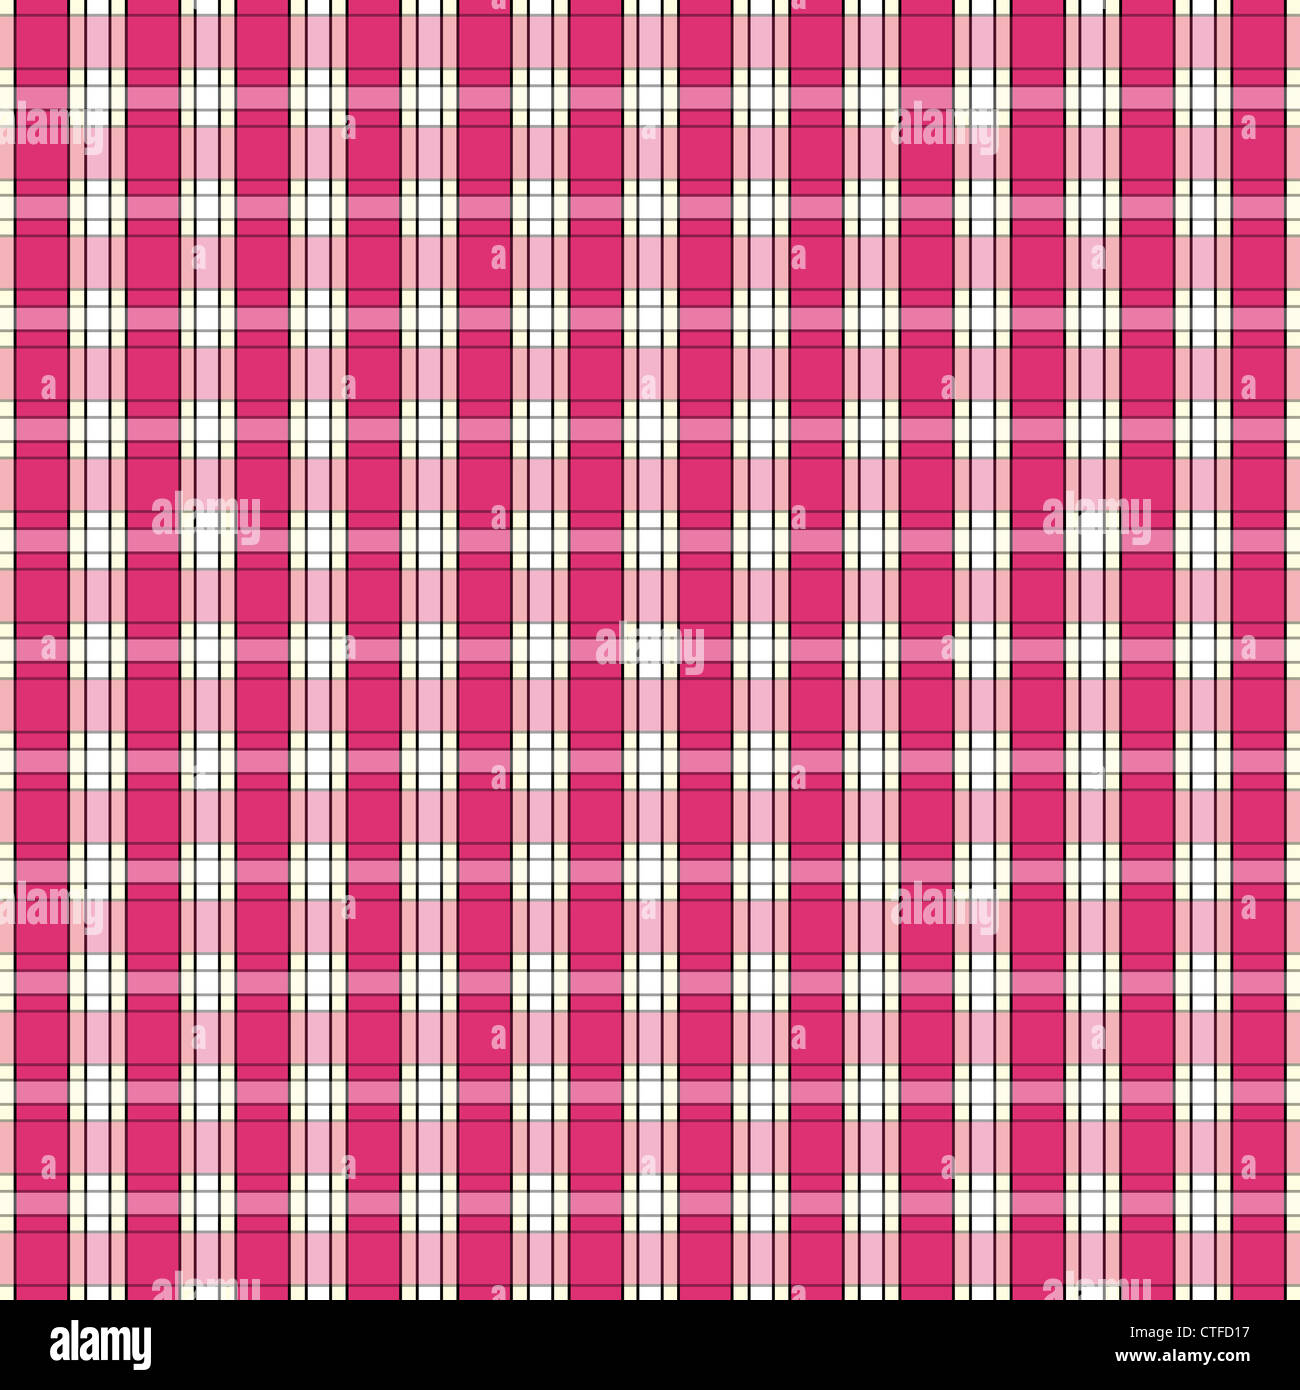 Plaid pattern in pink and white Stock Photo